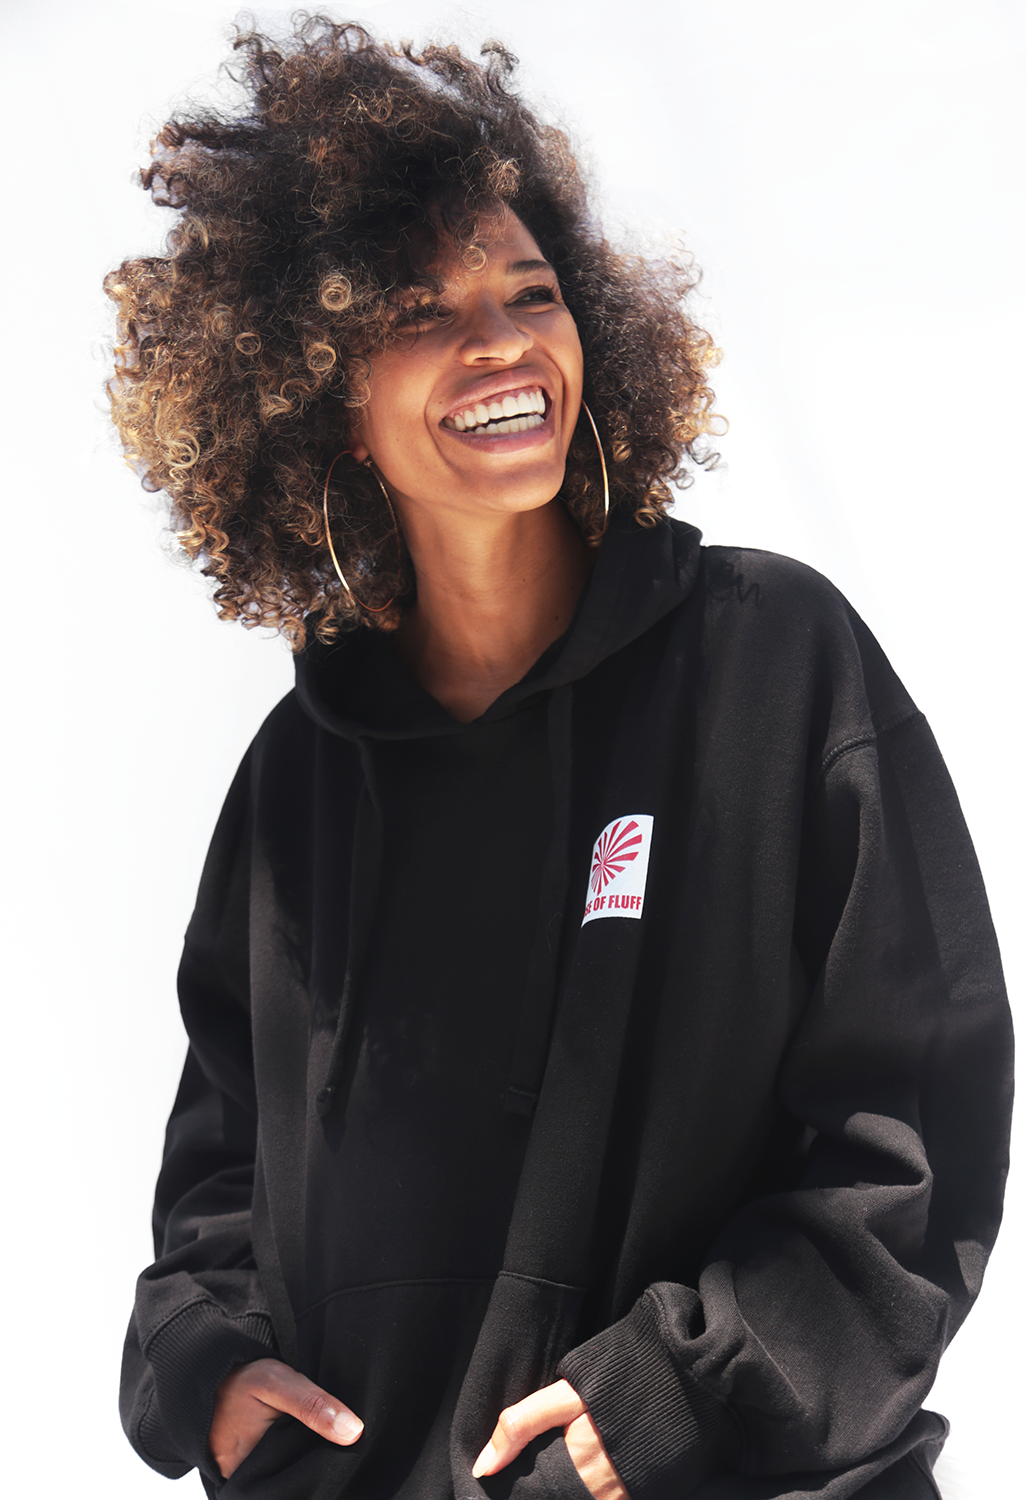 products/HOFlogo_blackhoodie_front_girlsmile.png